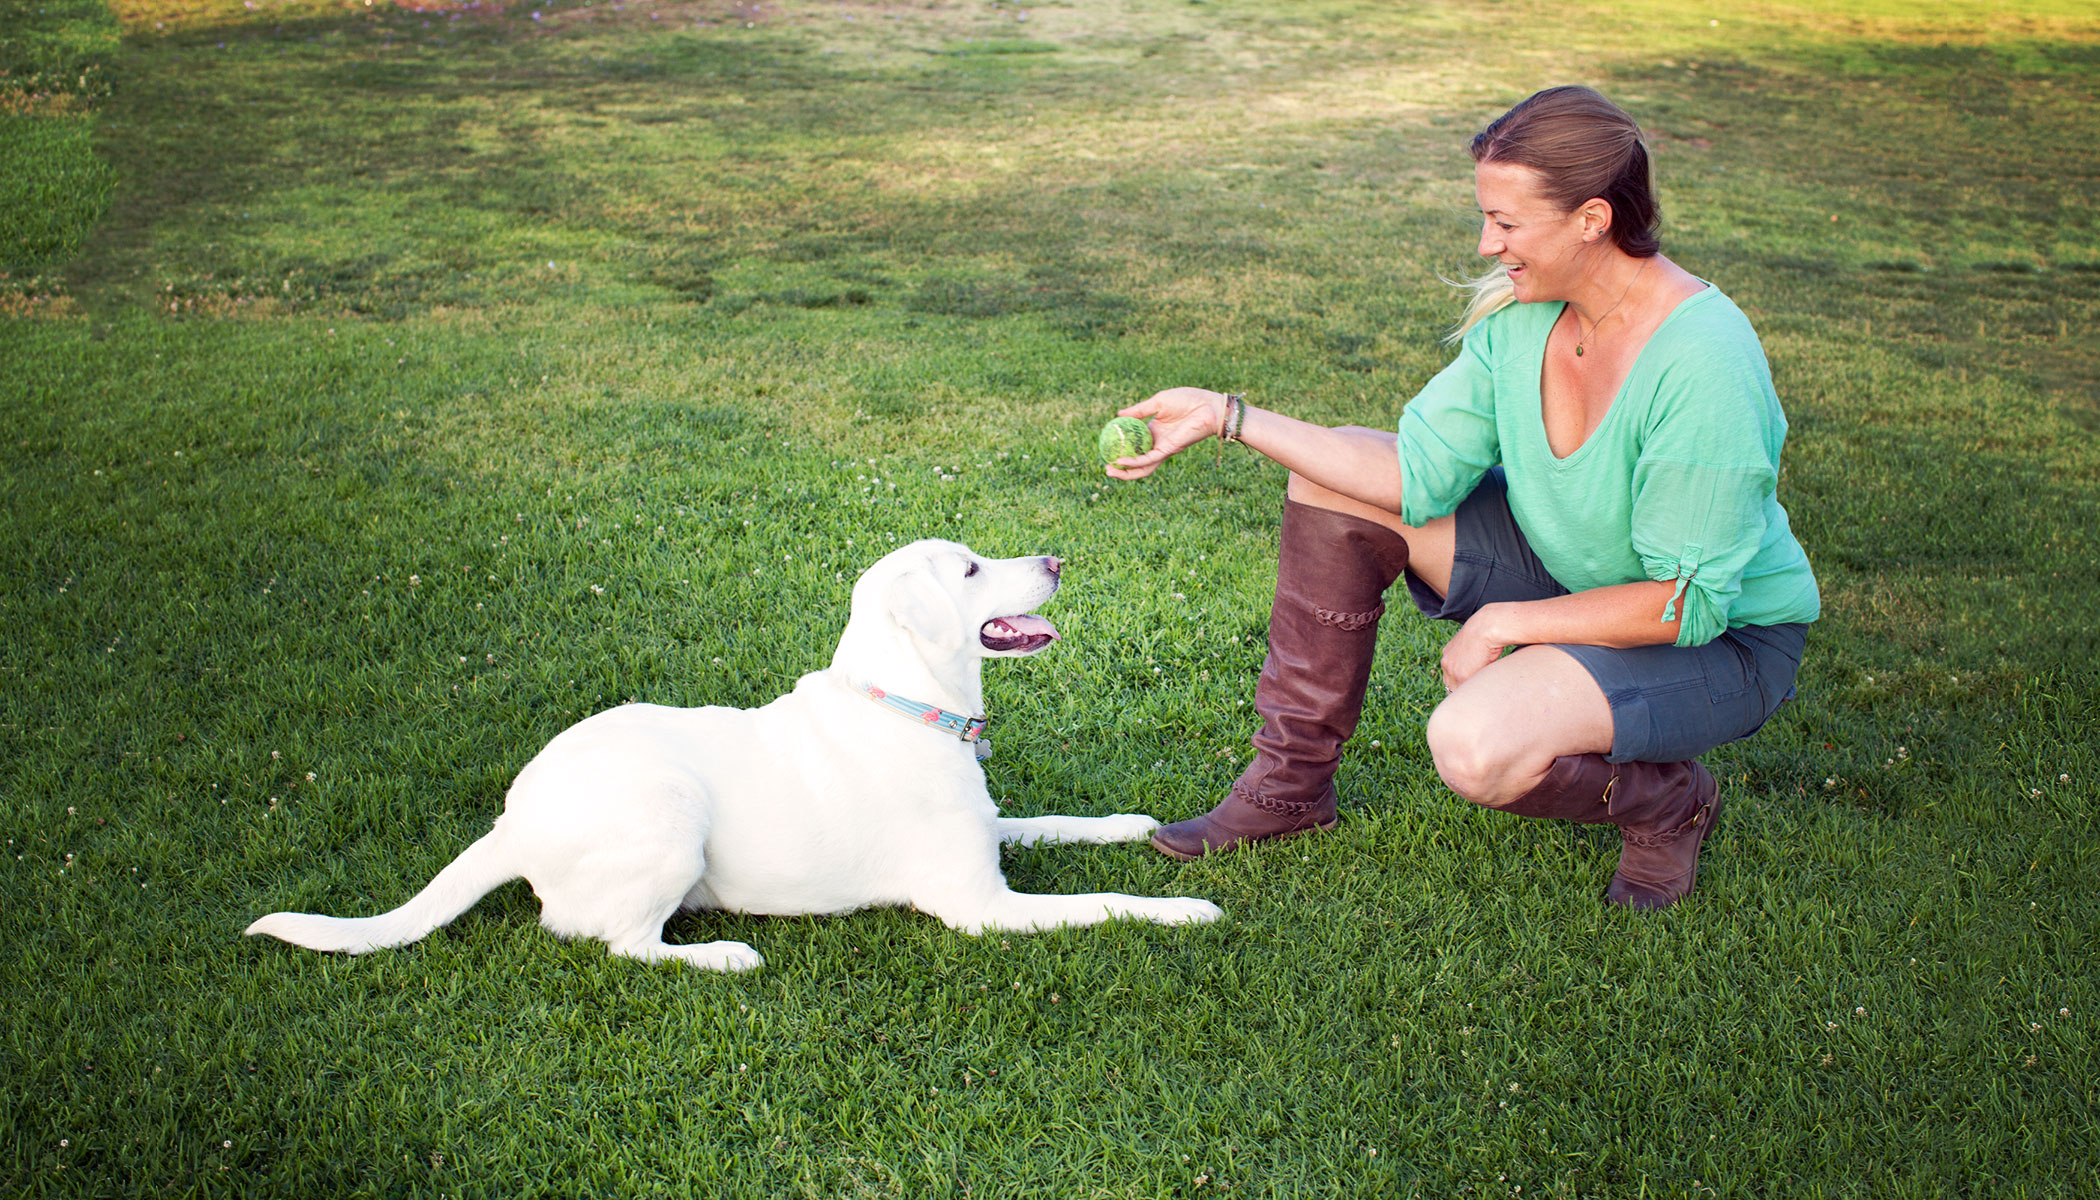 Our Senior Los Angeles Dog Trainer, Sara, playing some fetch with Callie The Dog